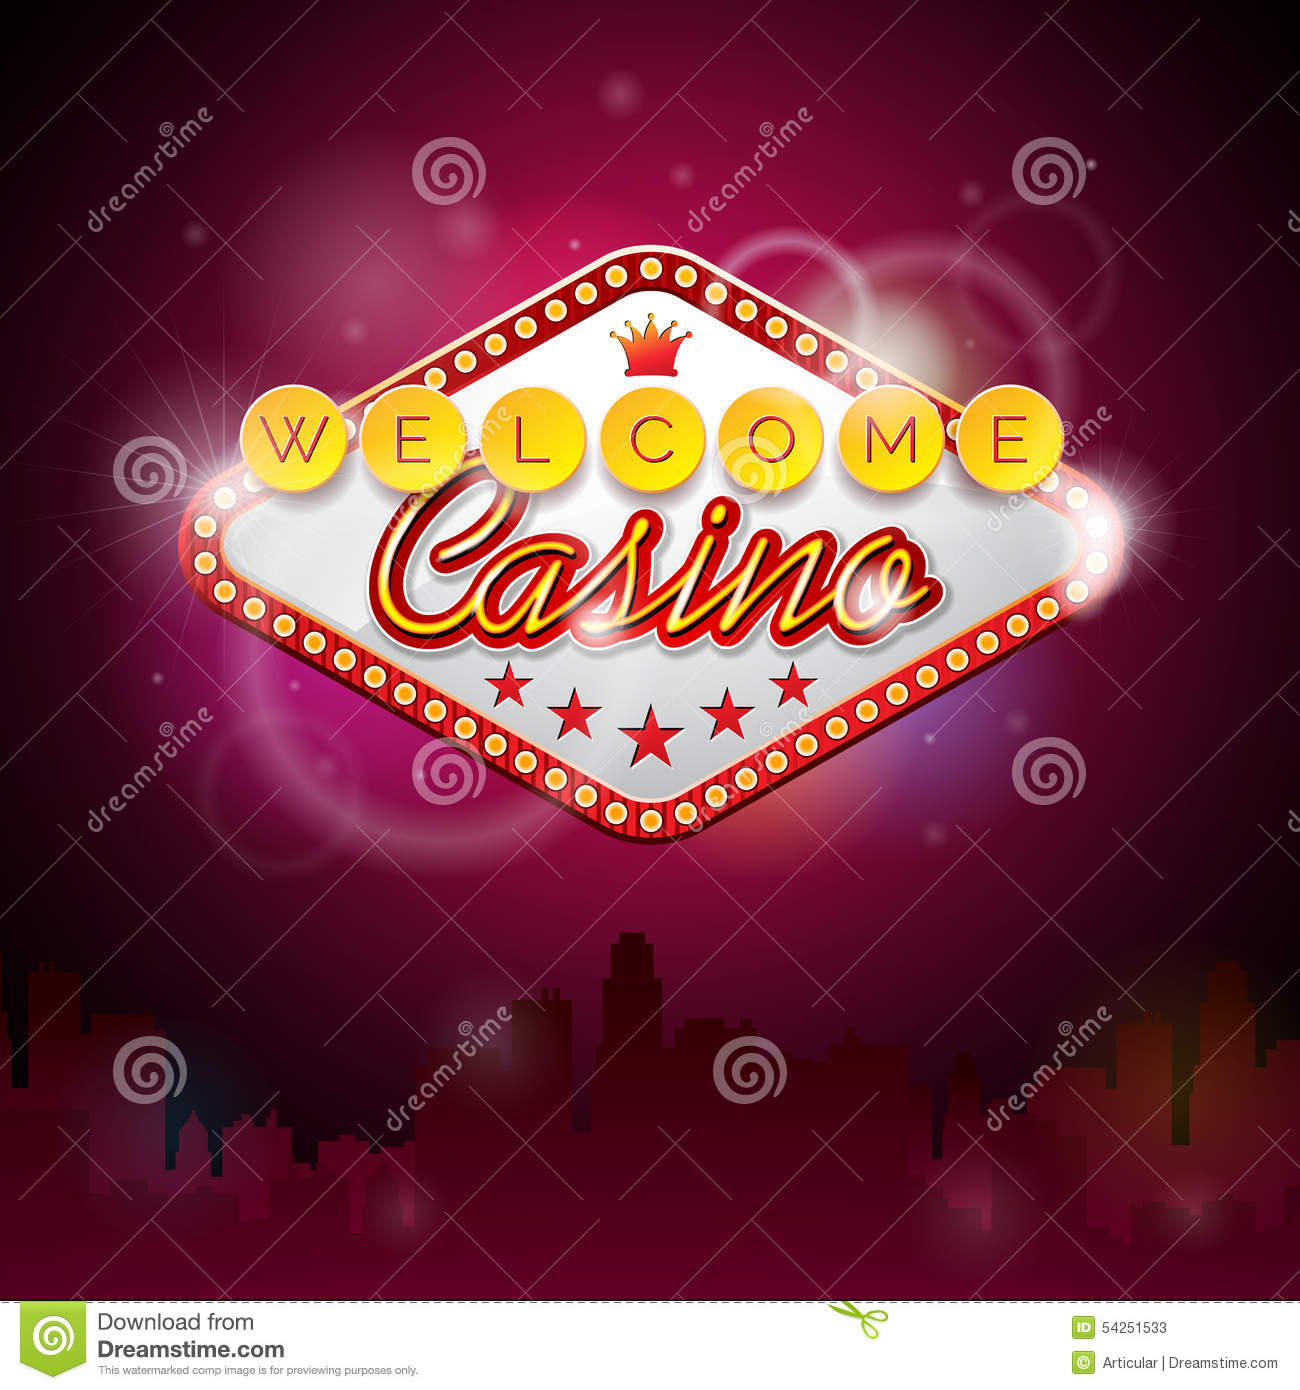 Casino welcome current online casino payout percentages